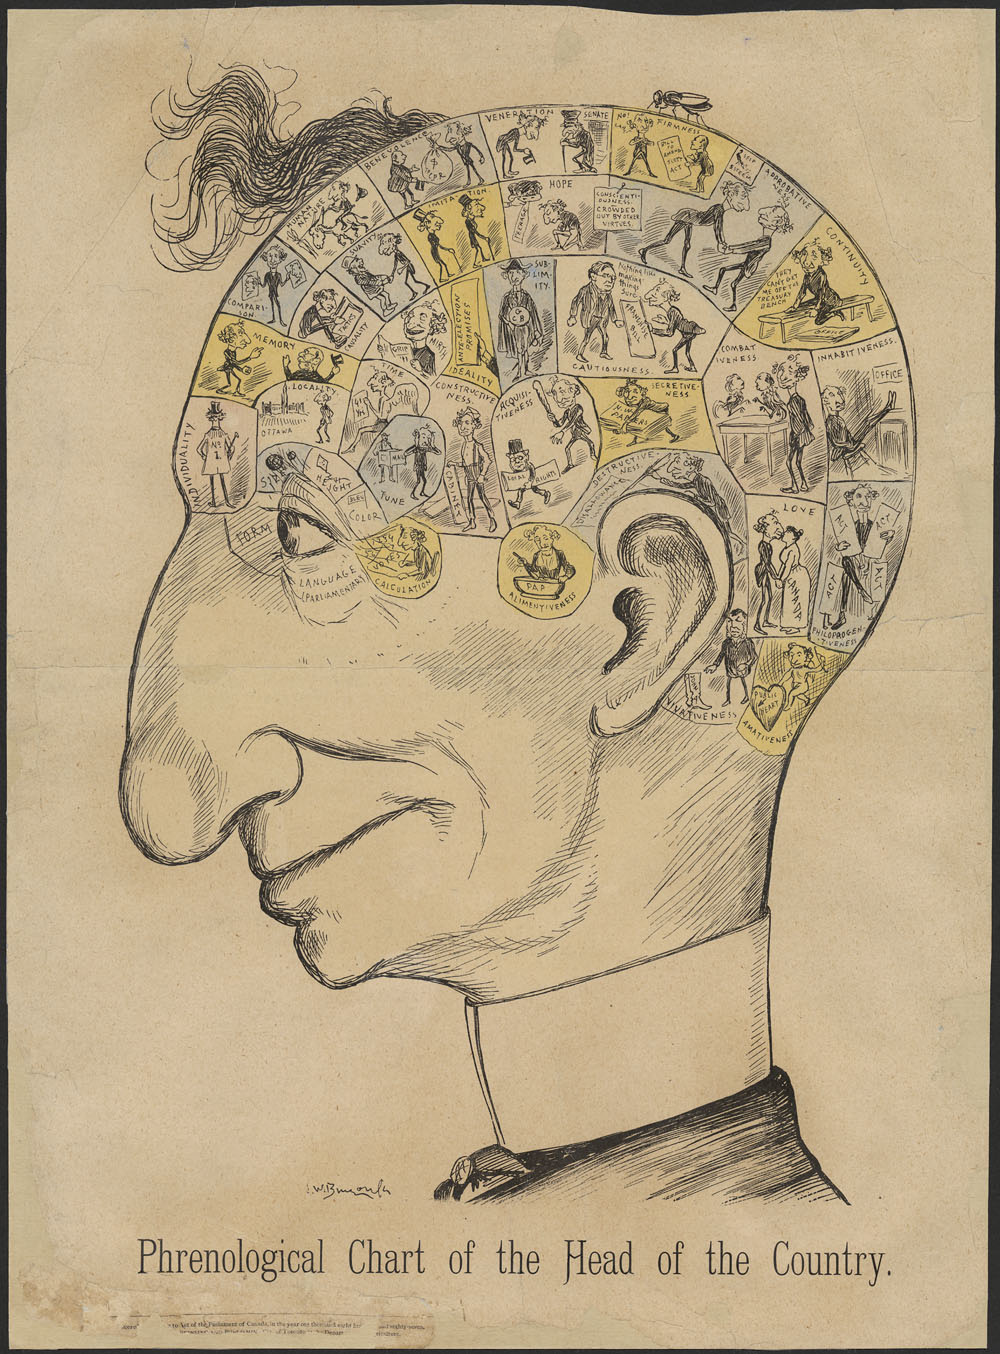 Phrenological Chart of Sir John A. Macdonald